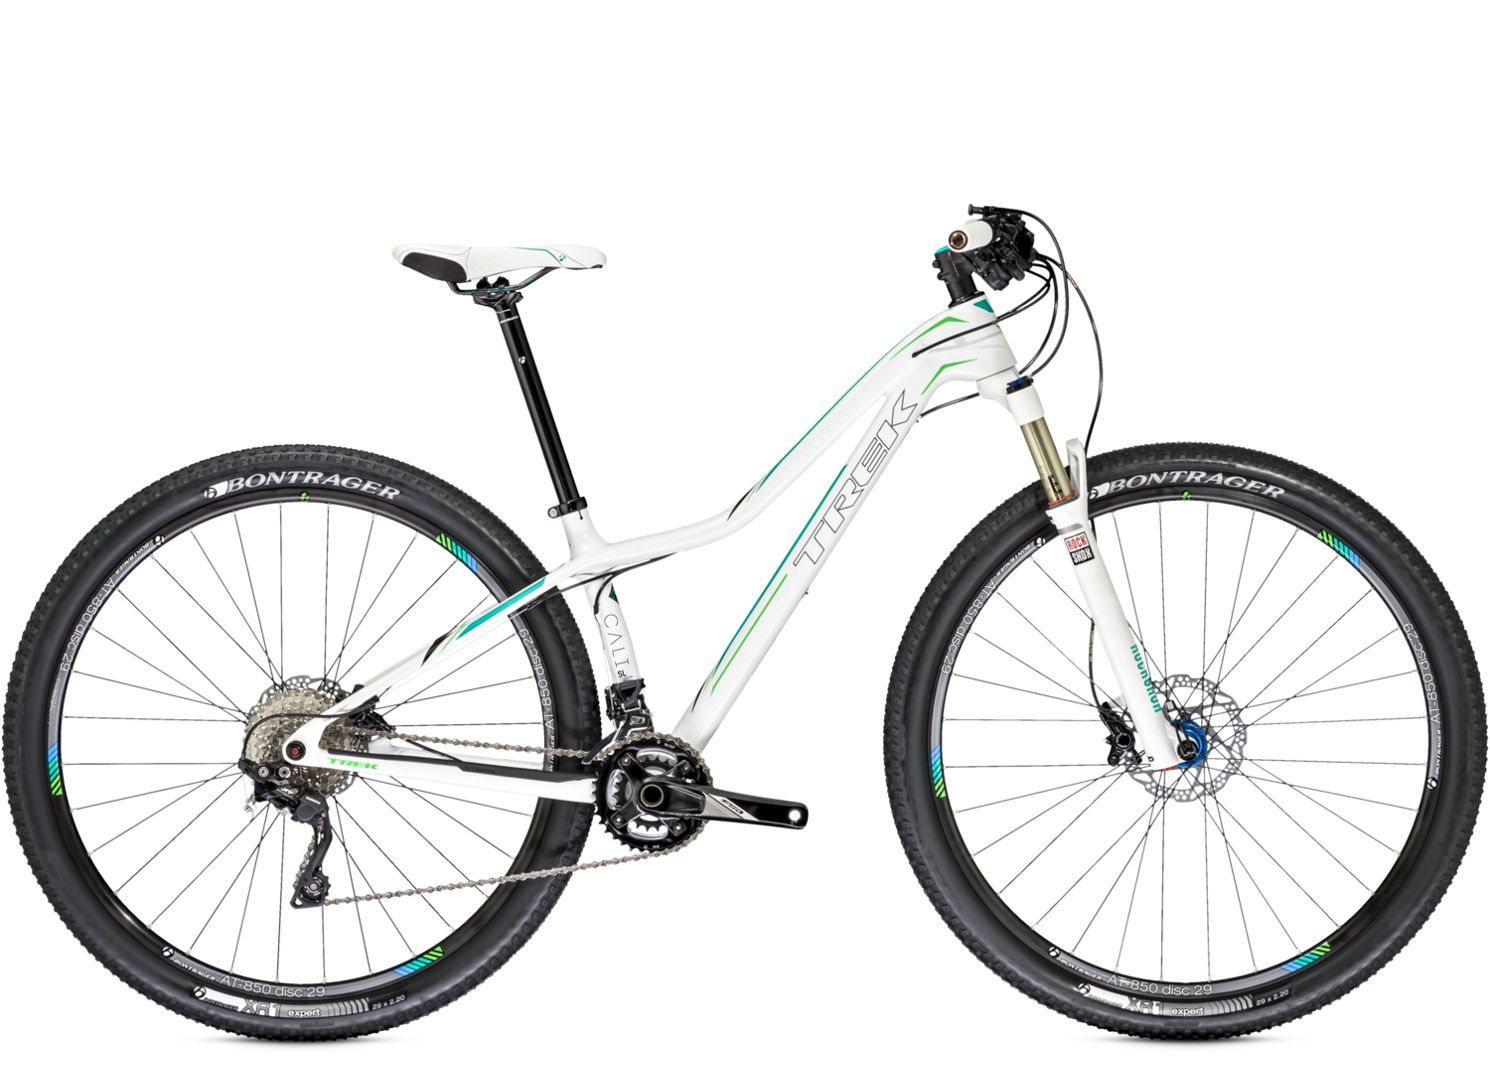 Cross Country Cali Carbon Sl Welcome To Cali This Women S 29er